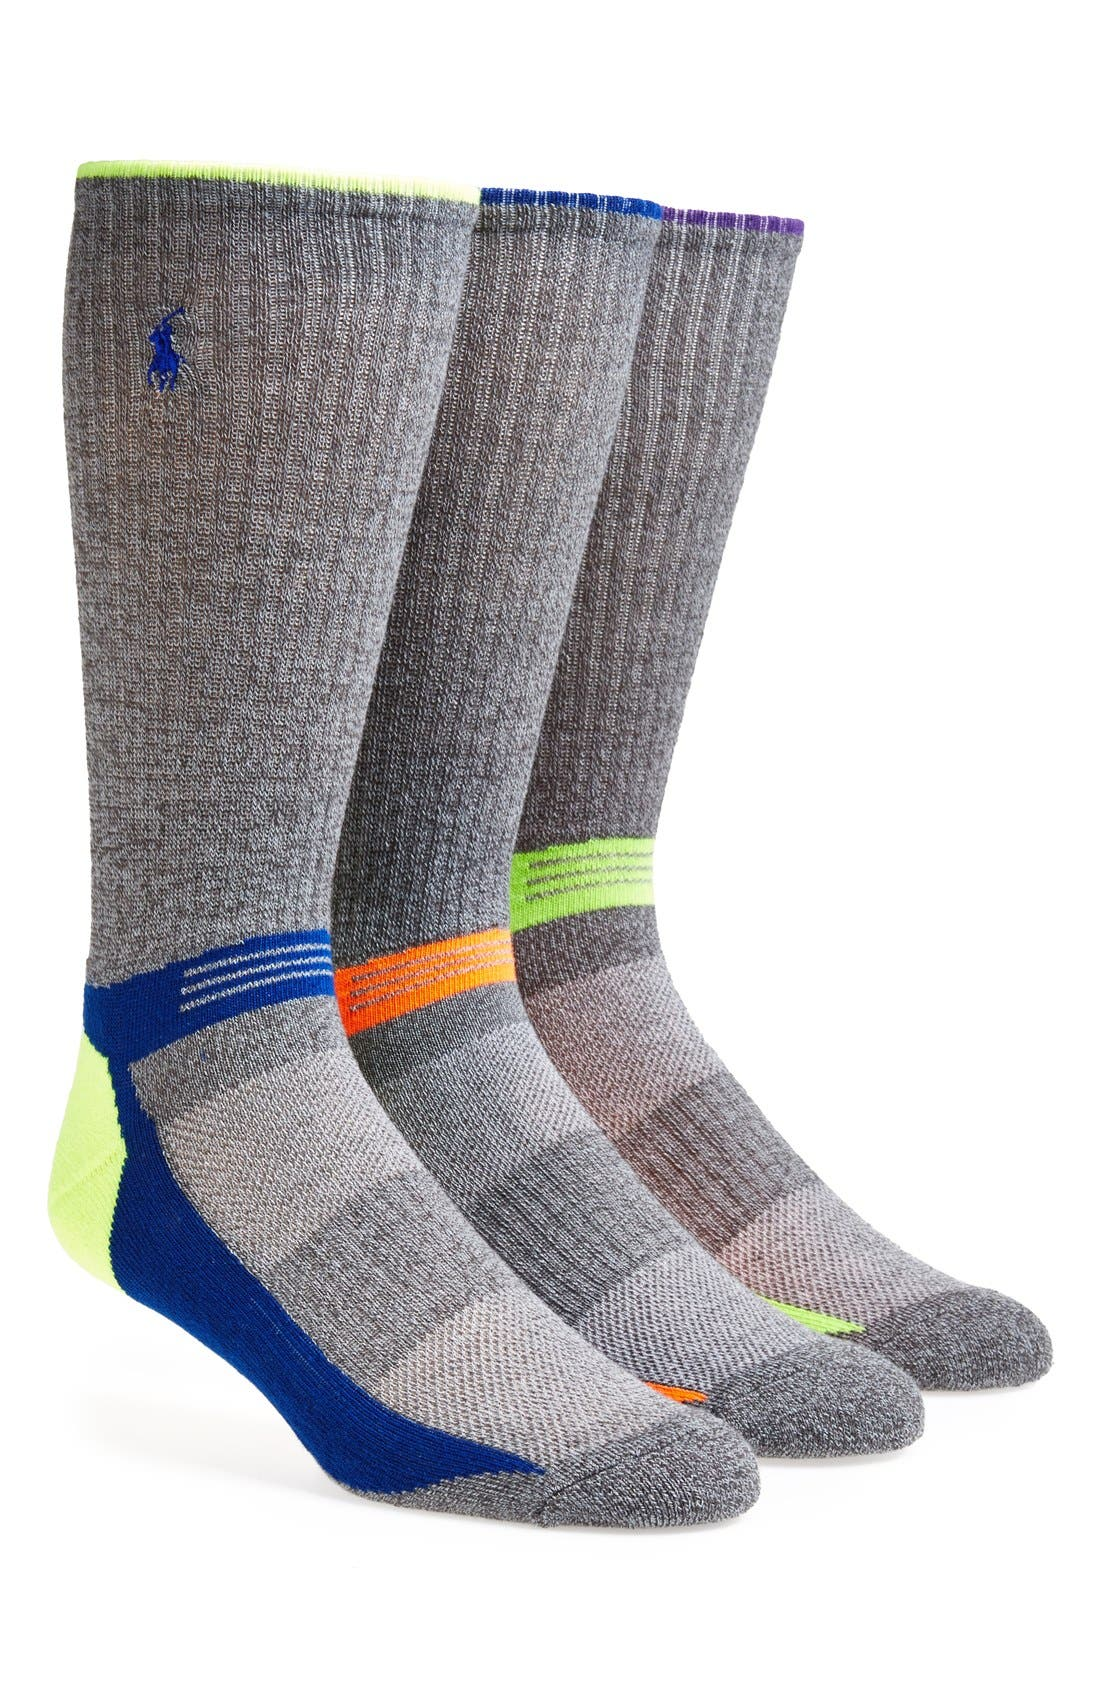 Alternate Image 1 Selected - Polo Ralph Lauren Athletic Socks (Assorted 3-Pack)